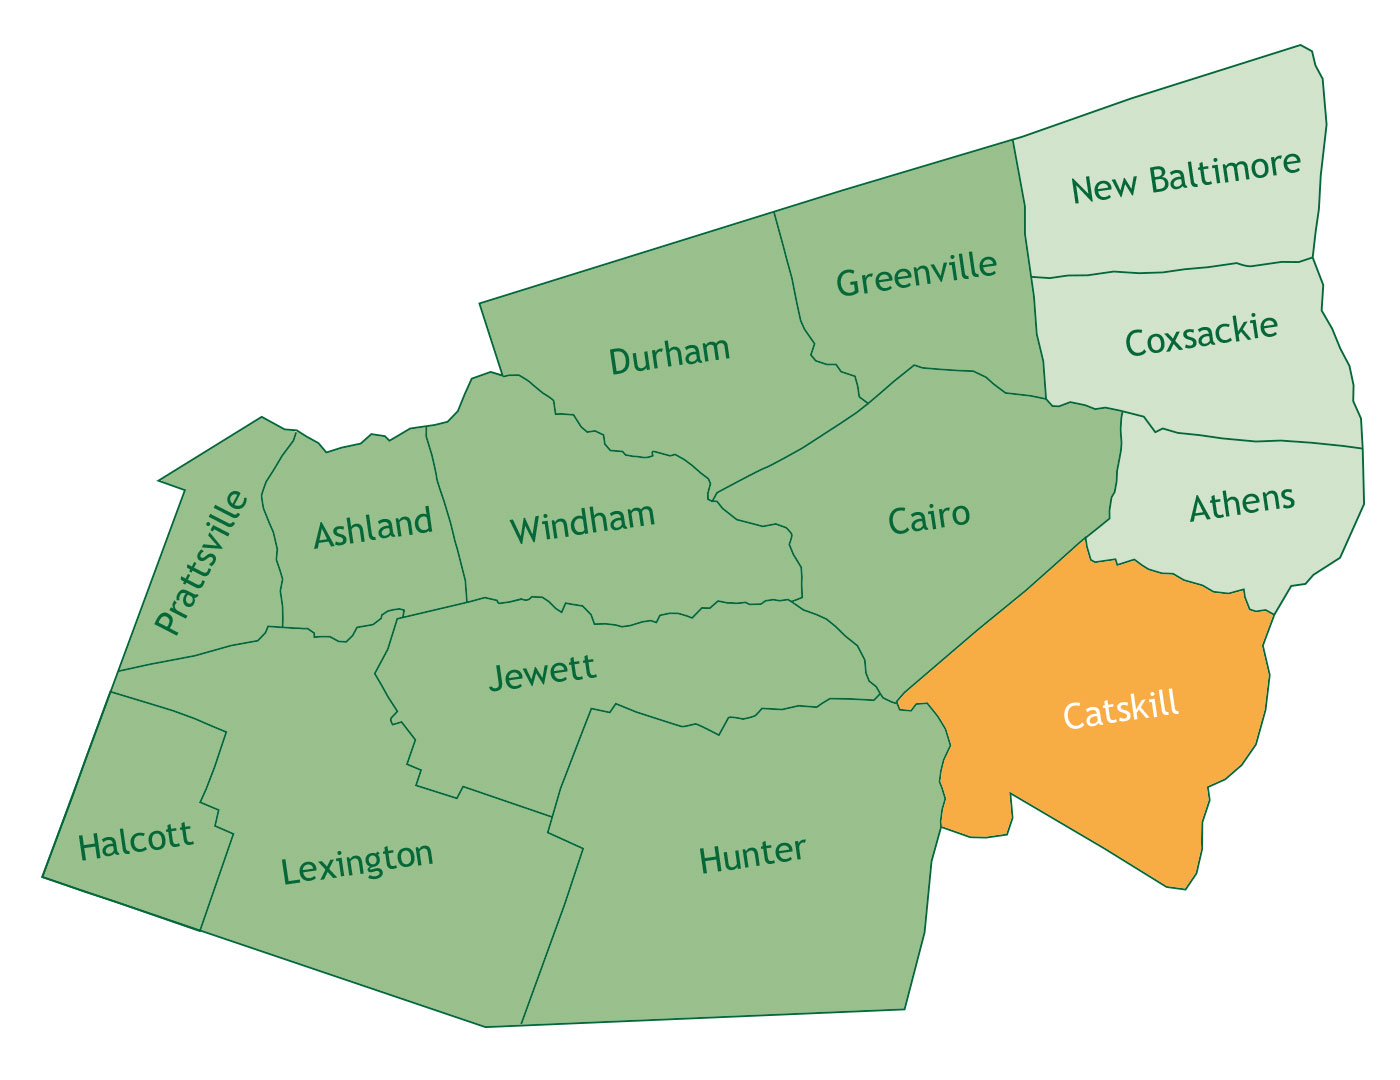 Catskill in Greene County